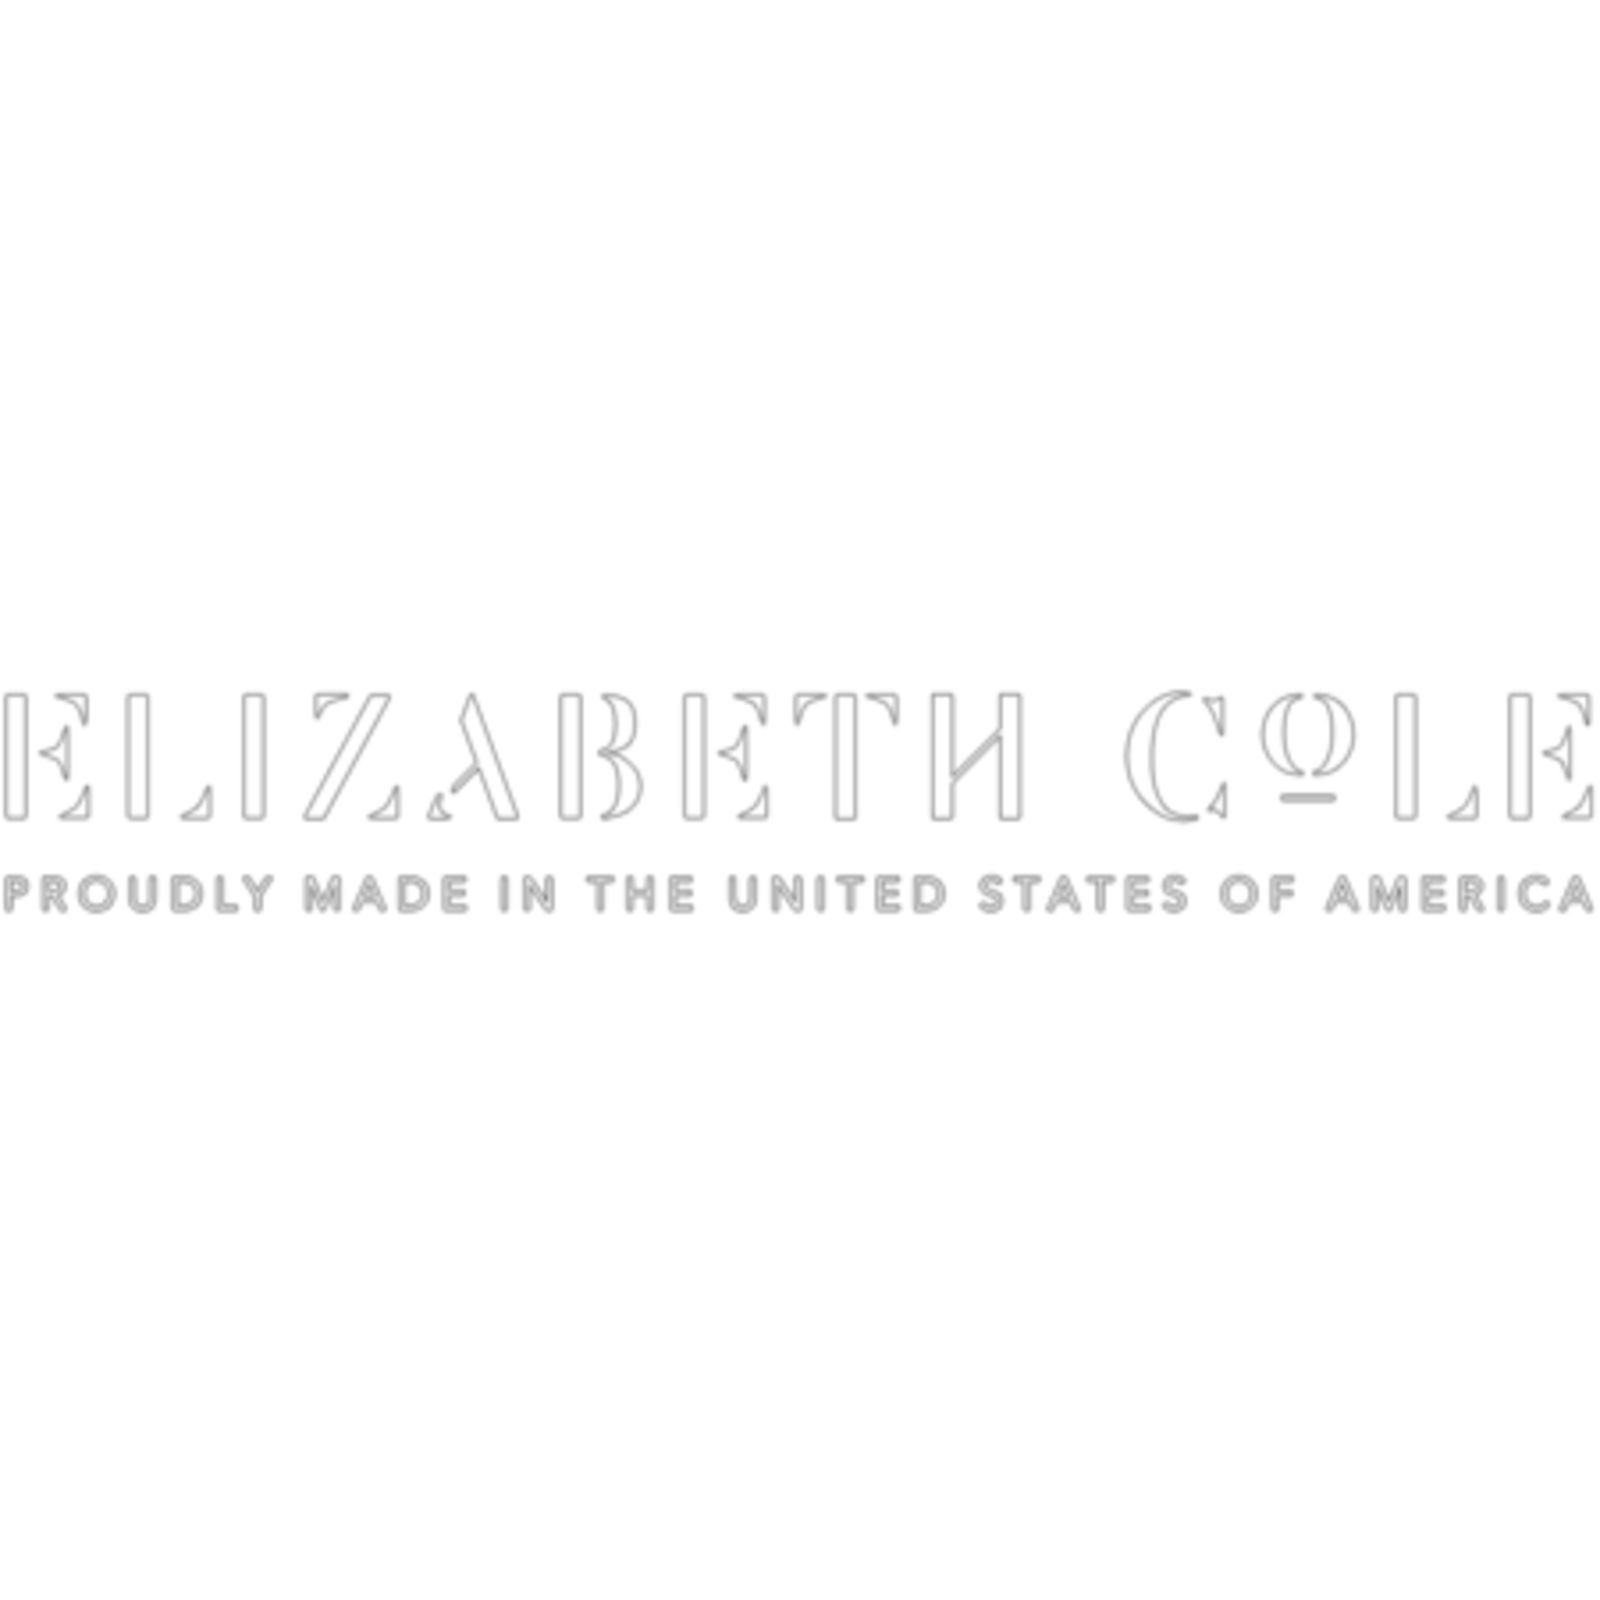 ELIZABETH COLE jewelry